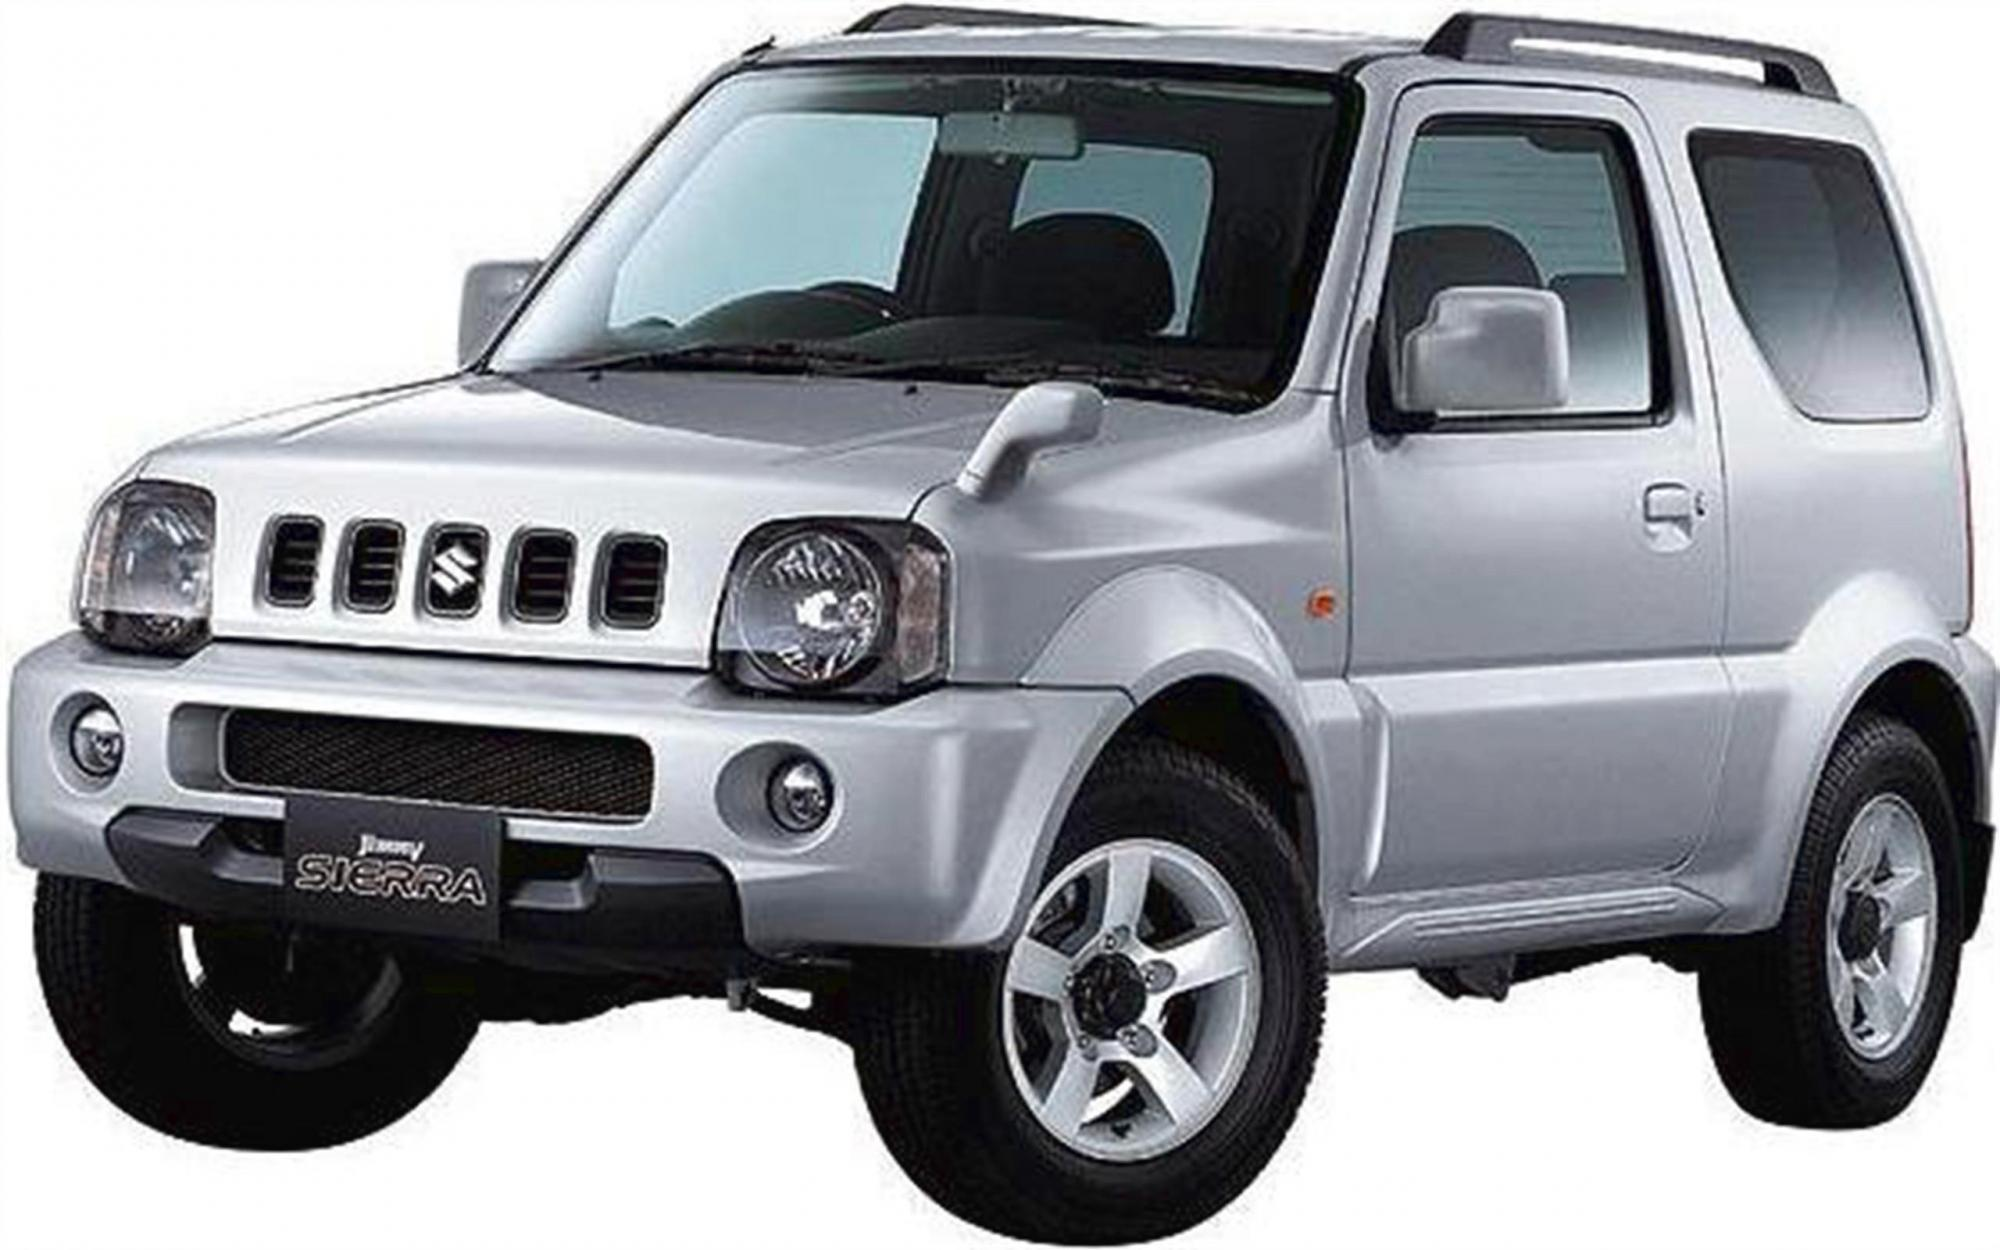 Suzuki Jimny New Generation >> Jimny 5 Door - Car Reviews 2018